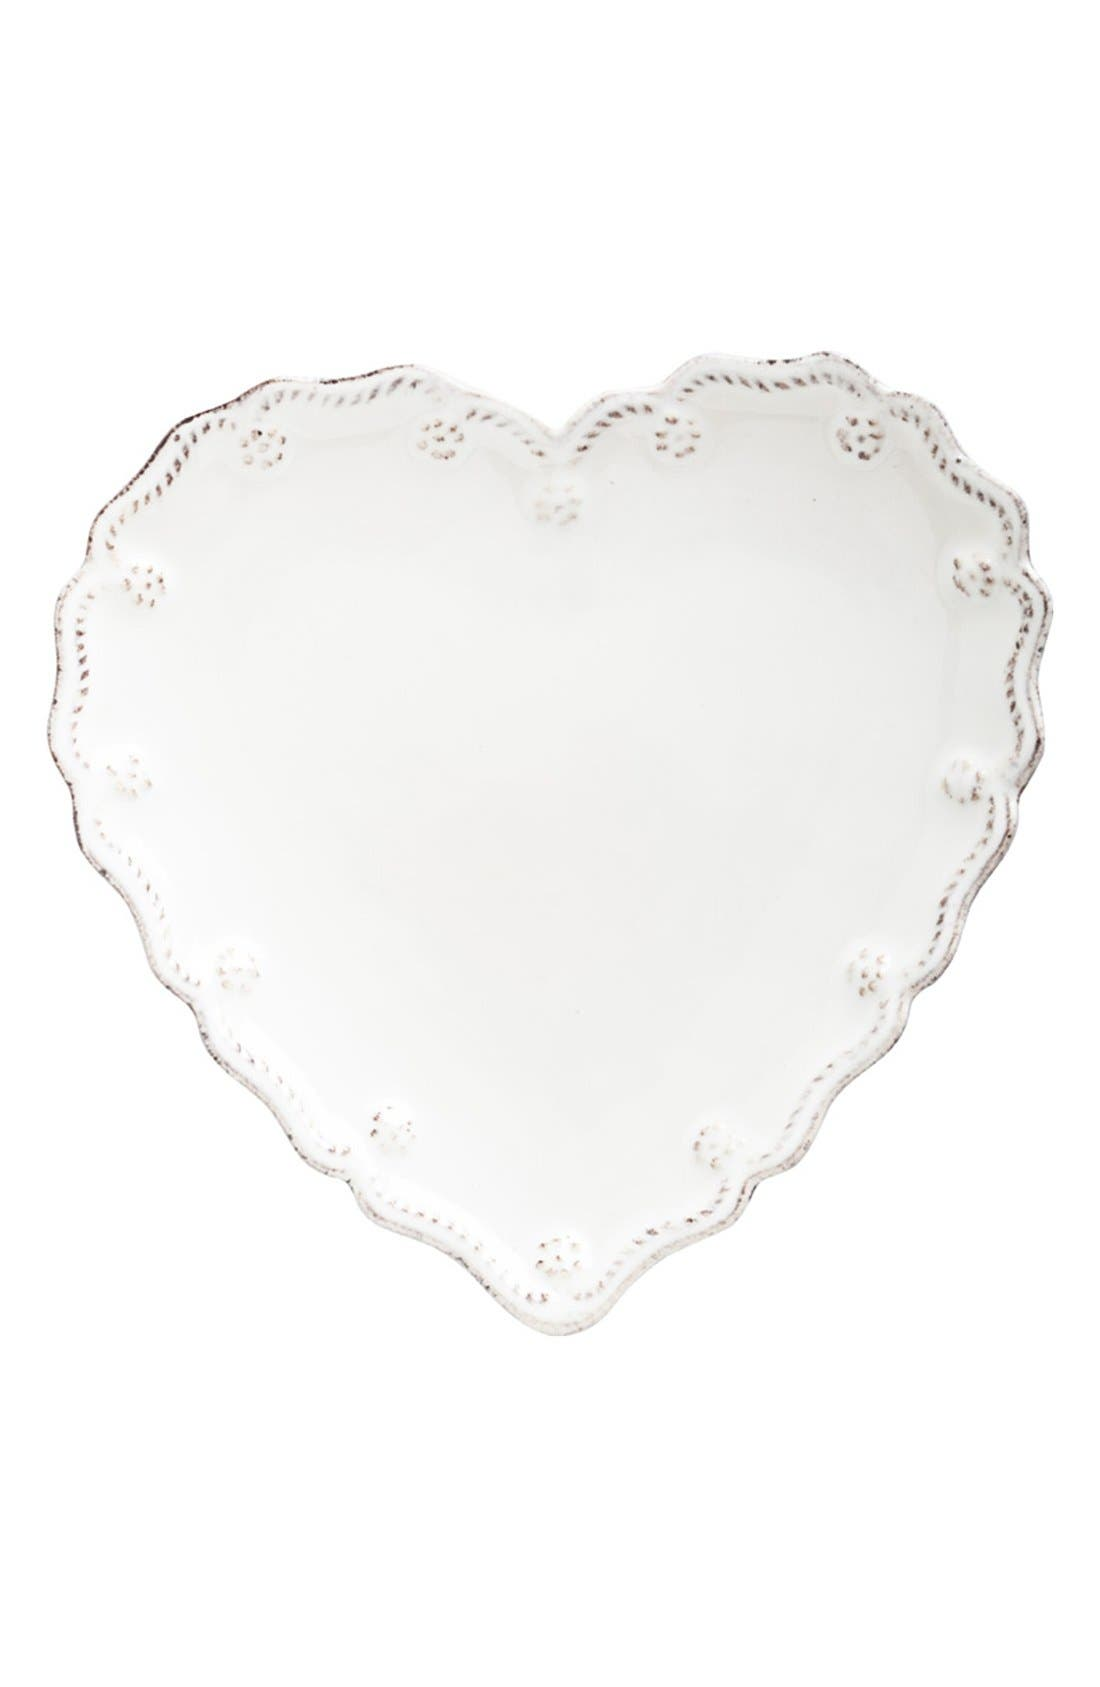 'Berry and Thread' Heart Shaped Cocktail Plates,                             Main thumbnail 1, color,